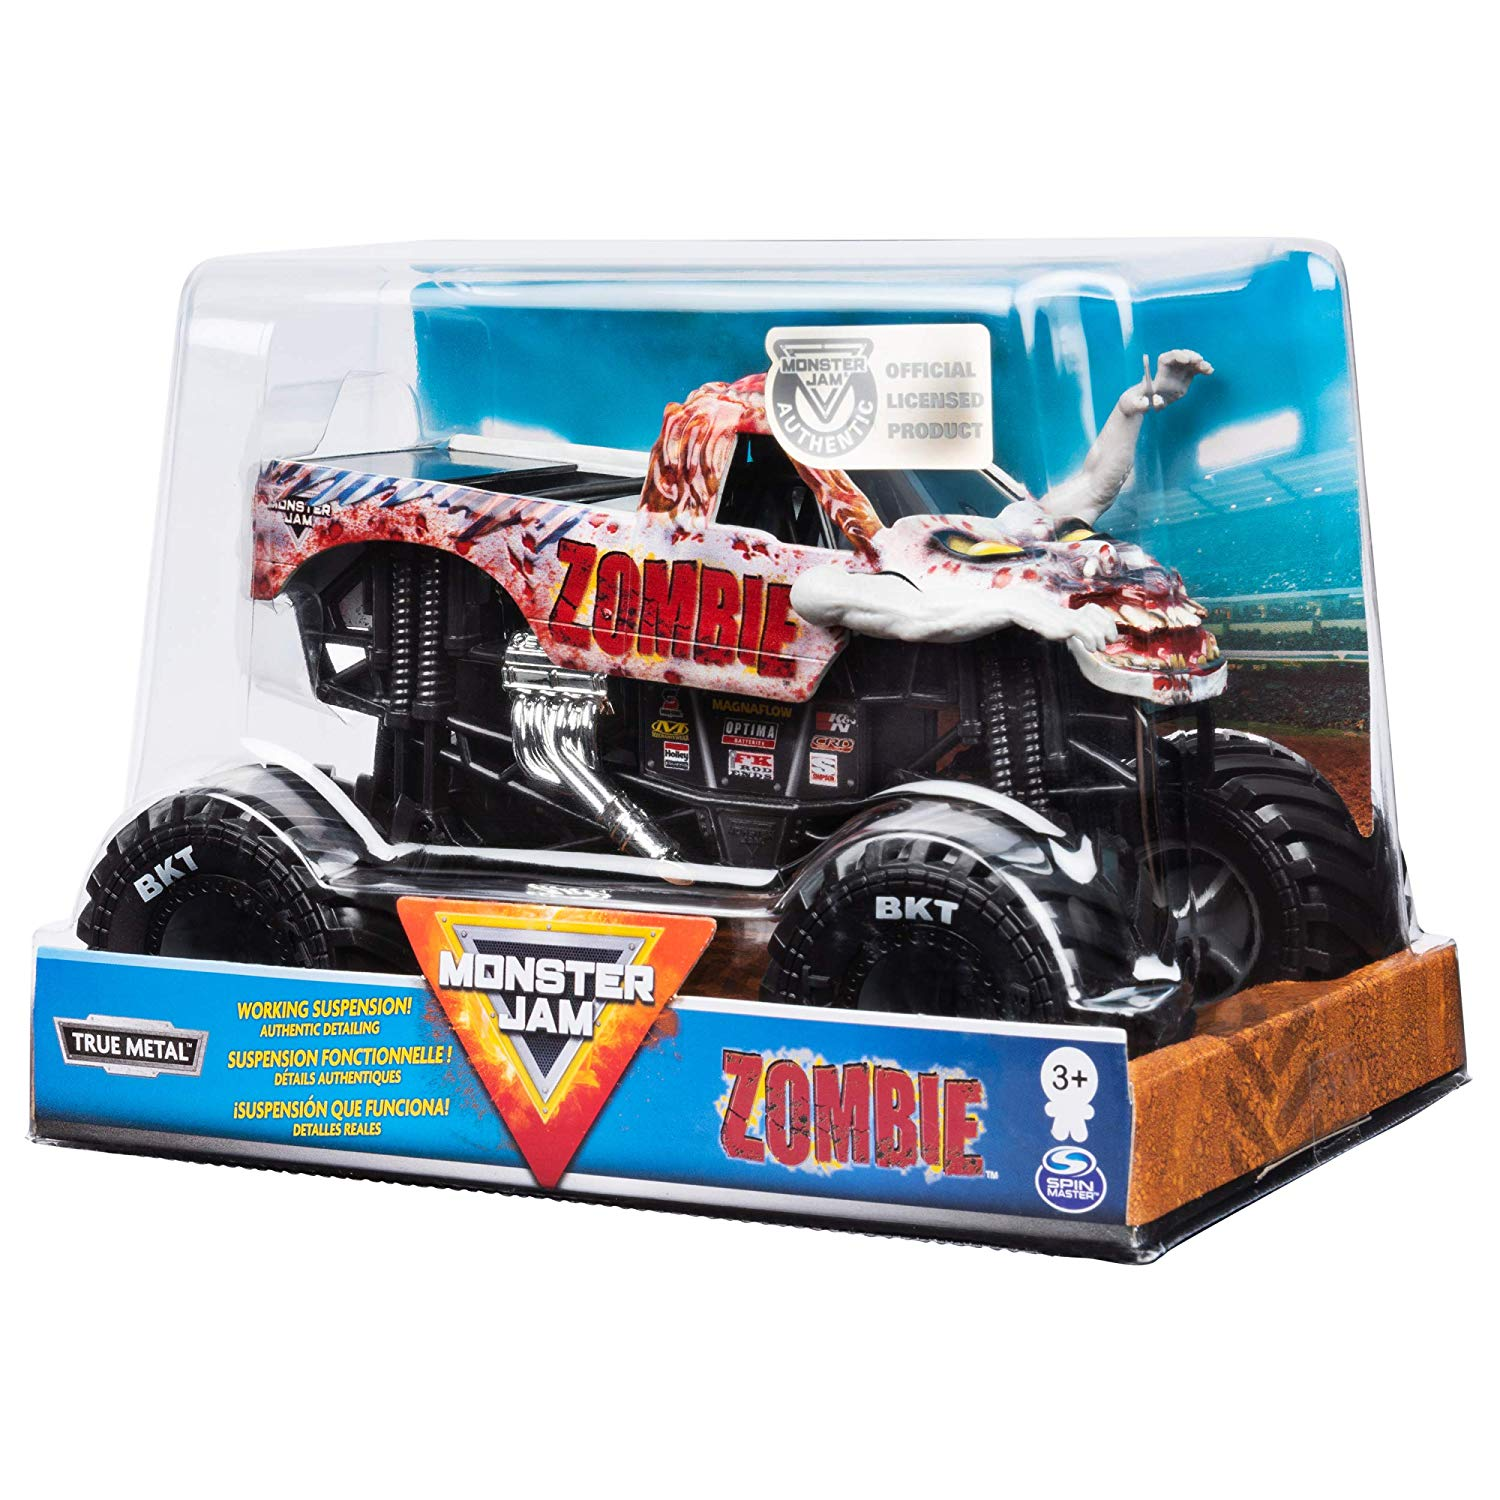 Monster Jam Diecast - Zombie Truck - Escala 1:24 - Original